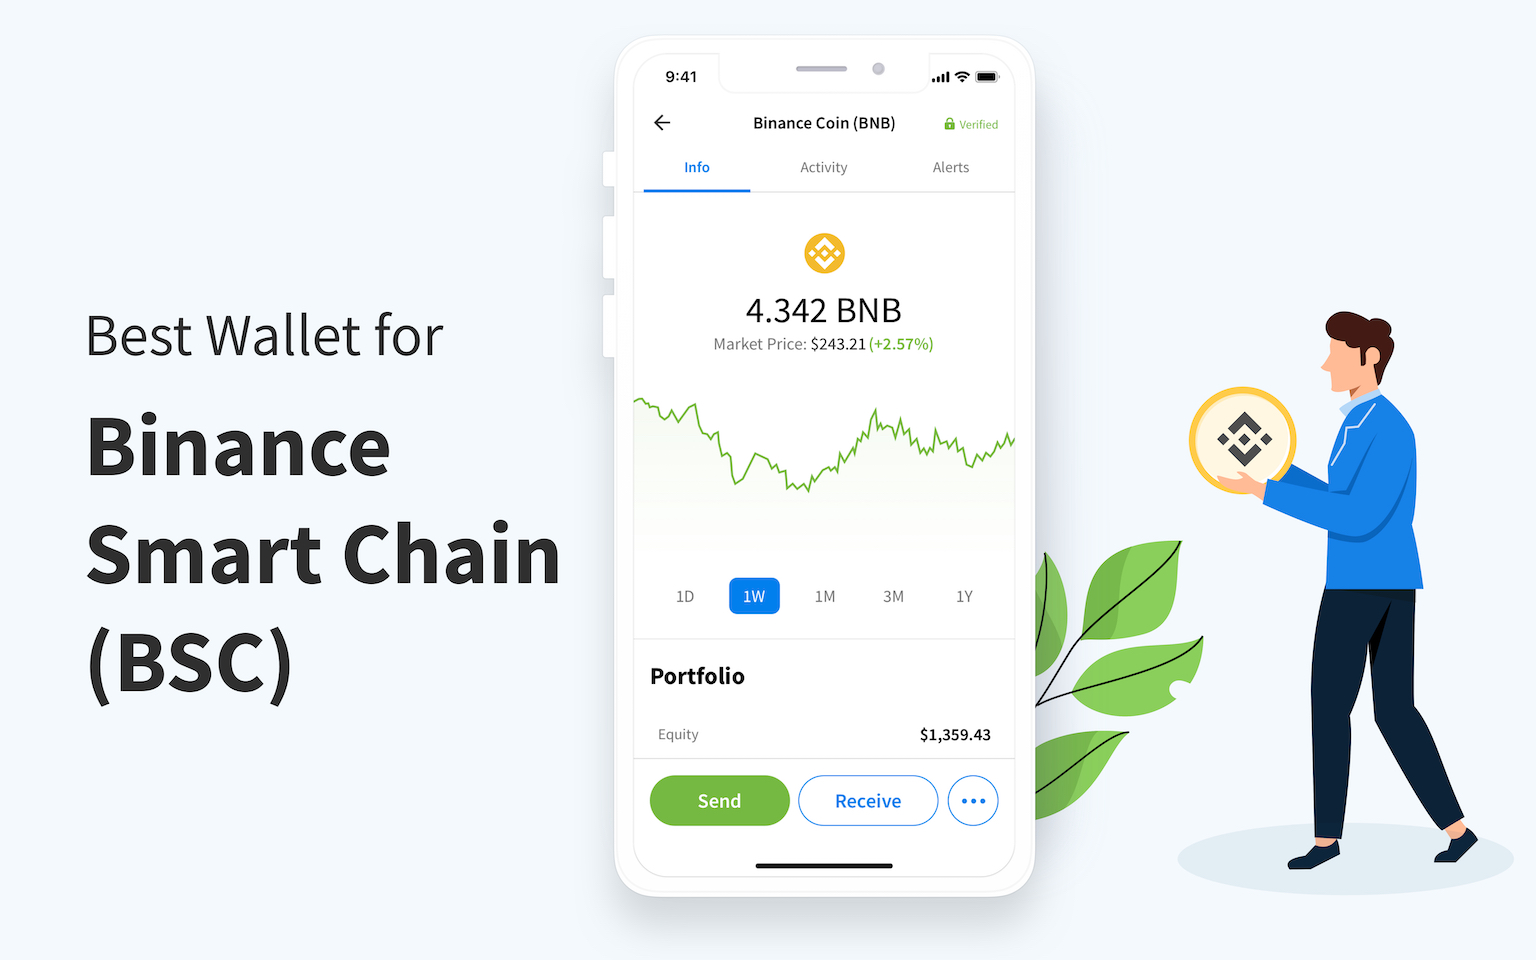 The Best Wallet for BSC (Binance Smart Chain)